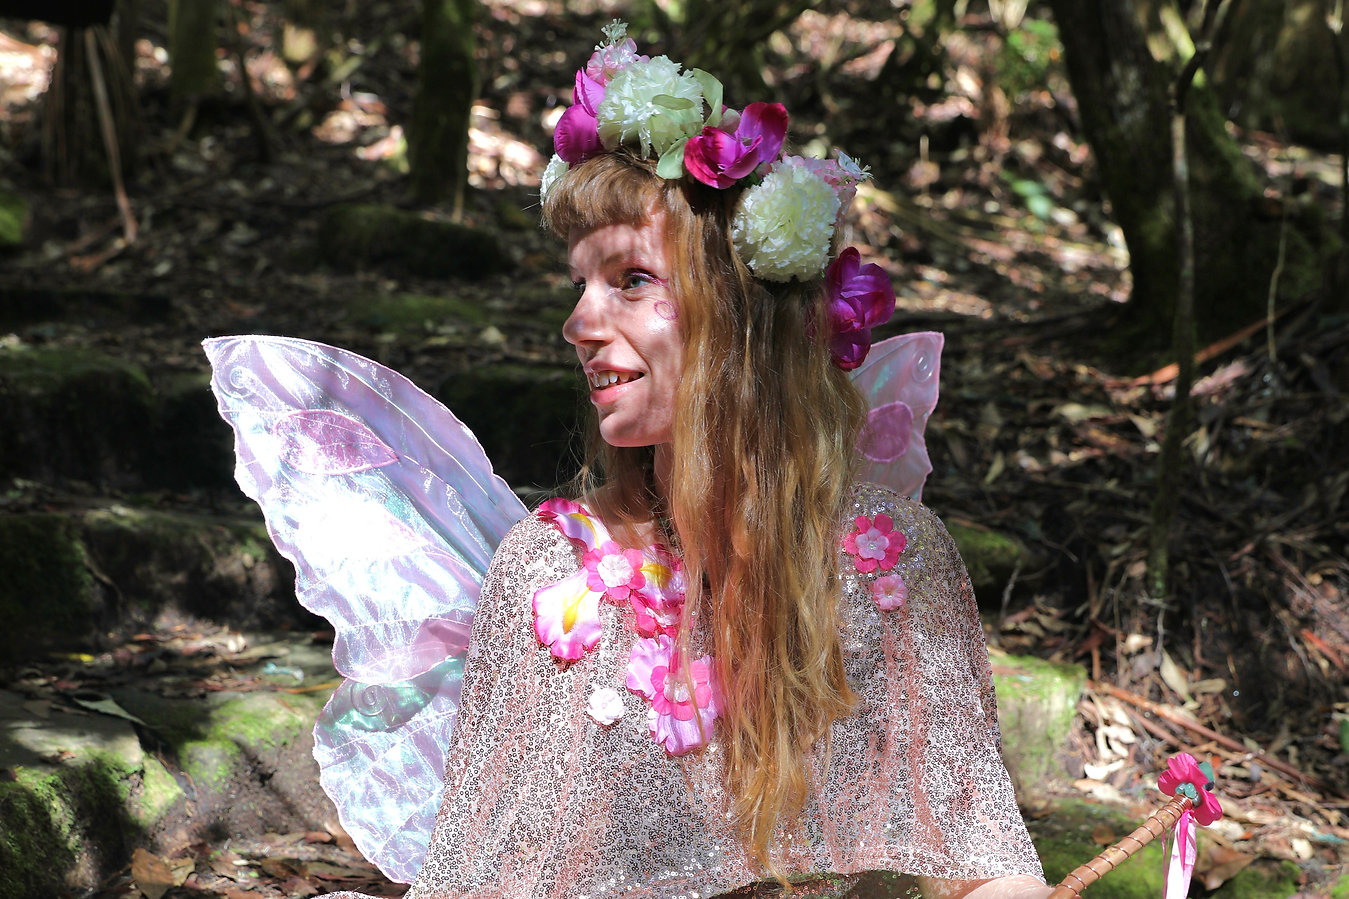 Smiling fairy in the forest, Faerie Sweetpea